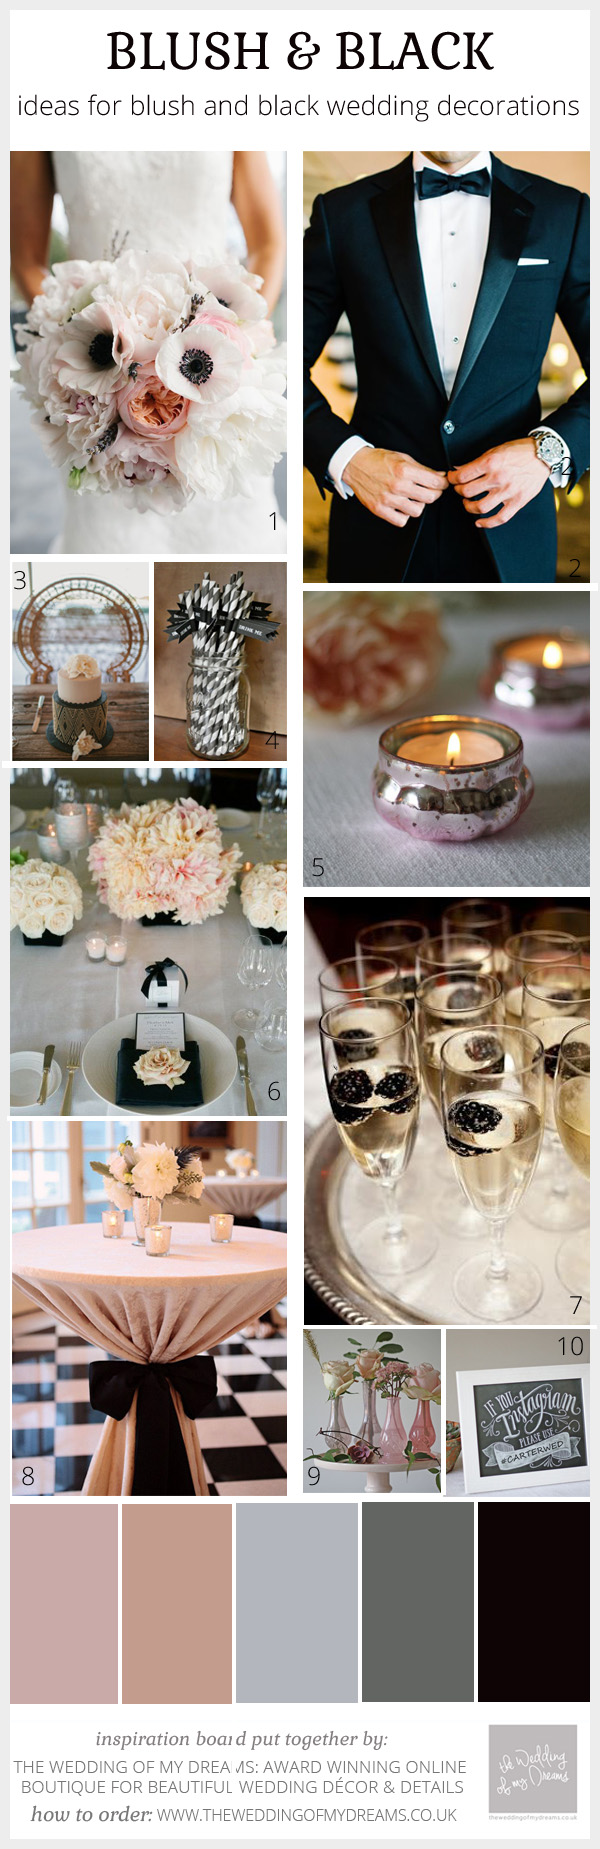 blush pink and black wedding inspiration and decorations